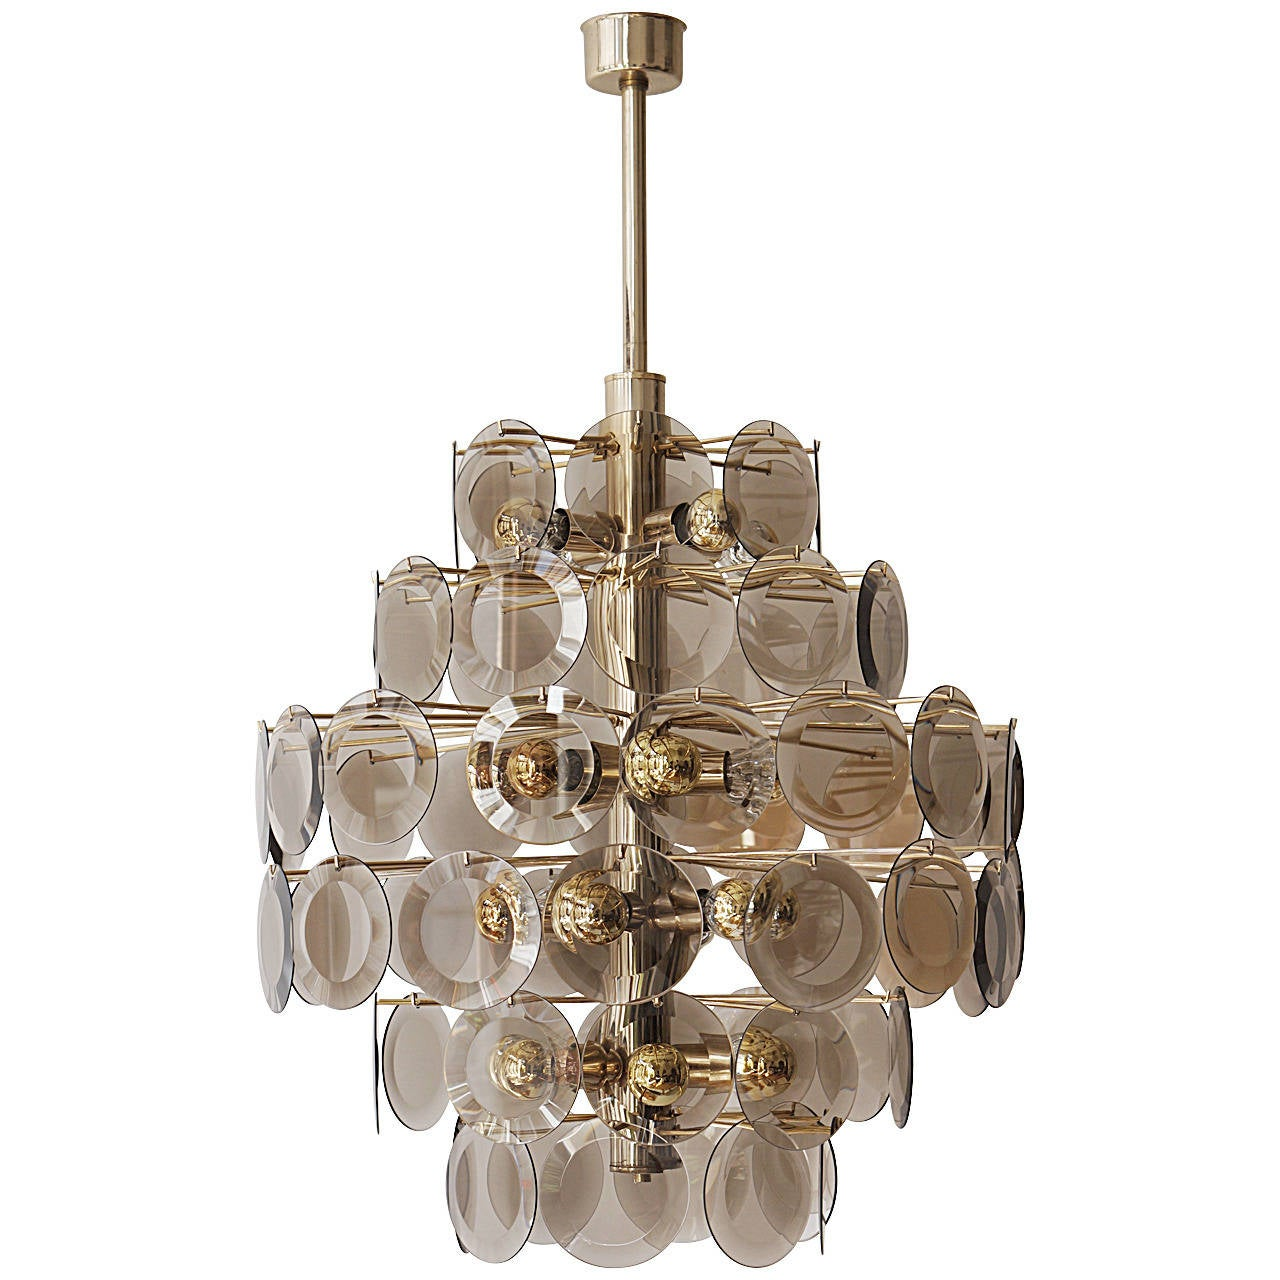 Large Vistosi Chandelier with 71 Murano Glass Discs